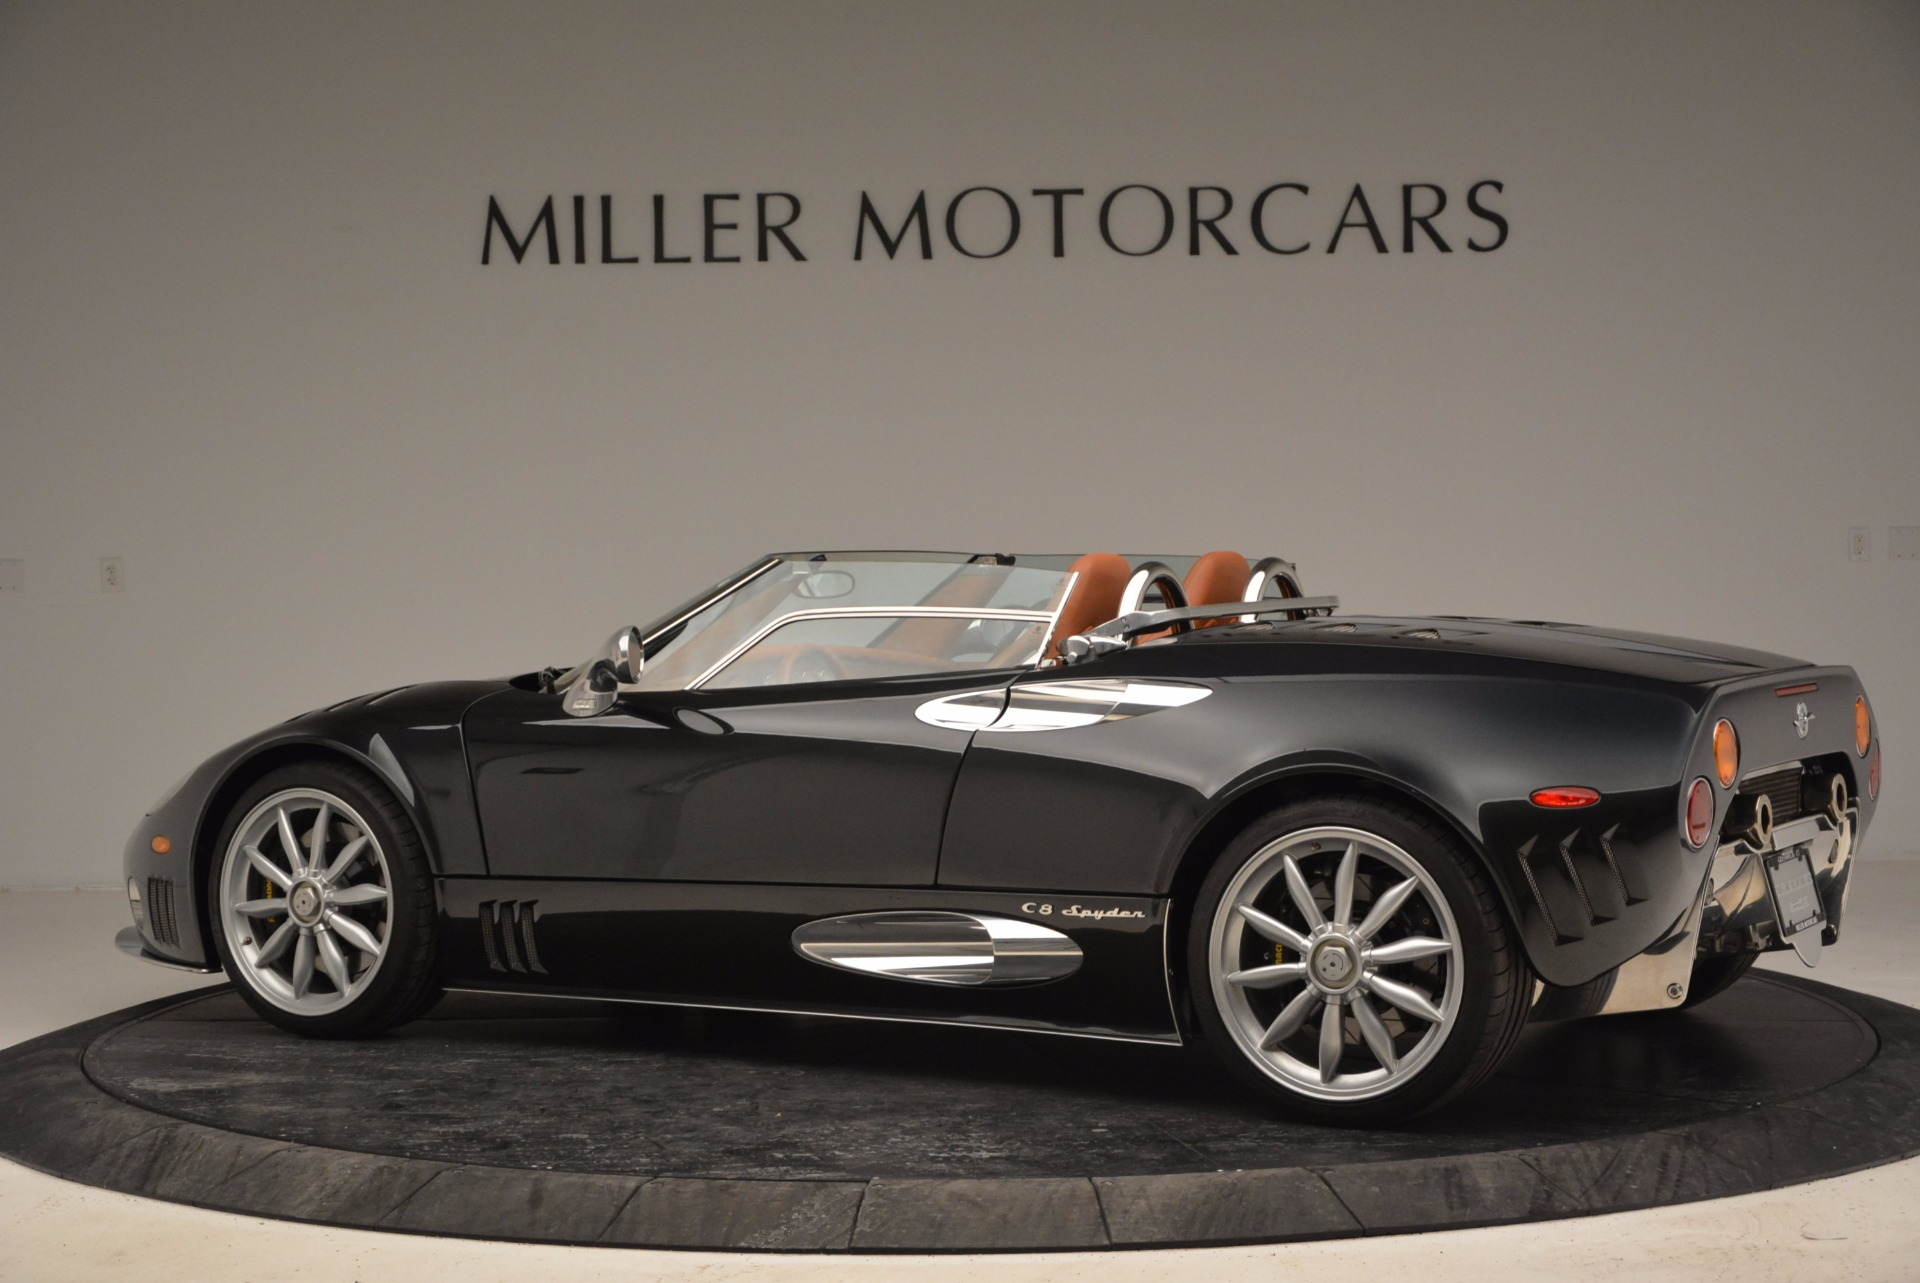 Used 2006 Spyker C8 Spyder  For Sale In Greenwich, CT 1007_p6